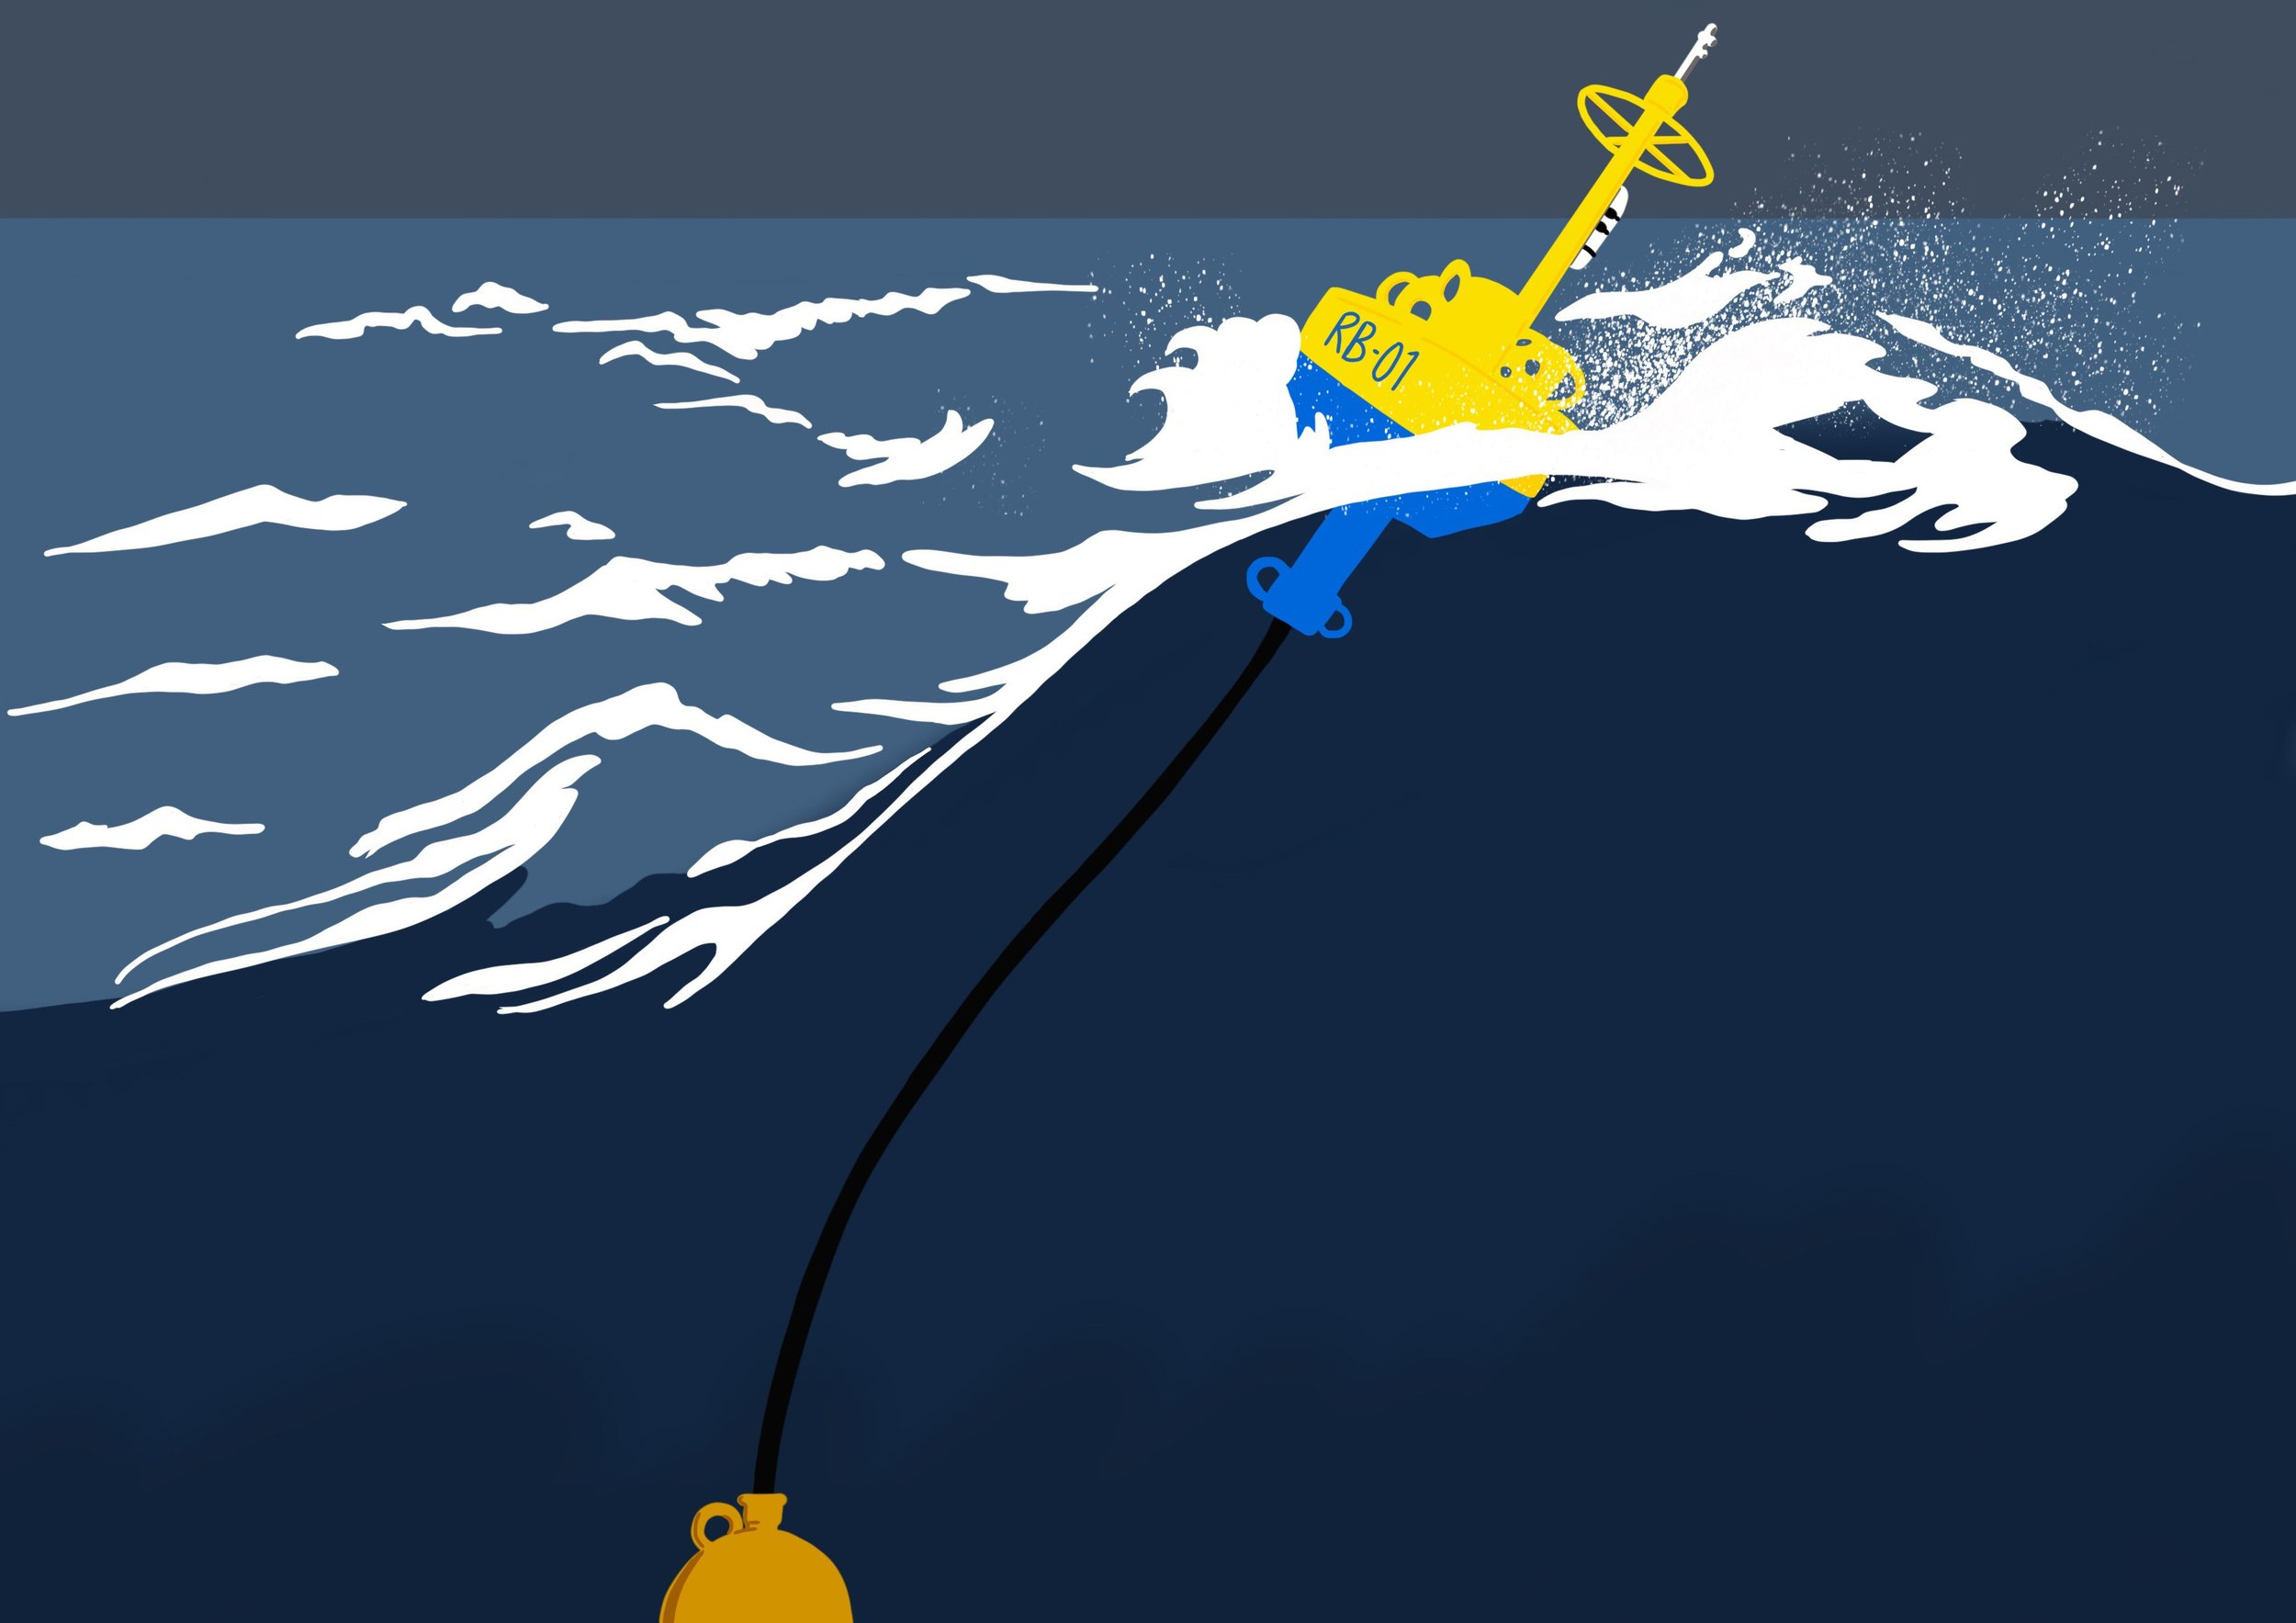 Buoy(ant) wellbeing - moving with, but not getting swept away by, challenges and opportunities